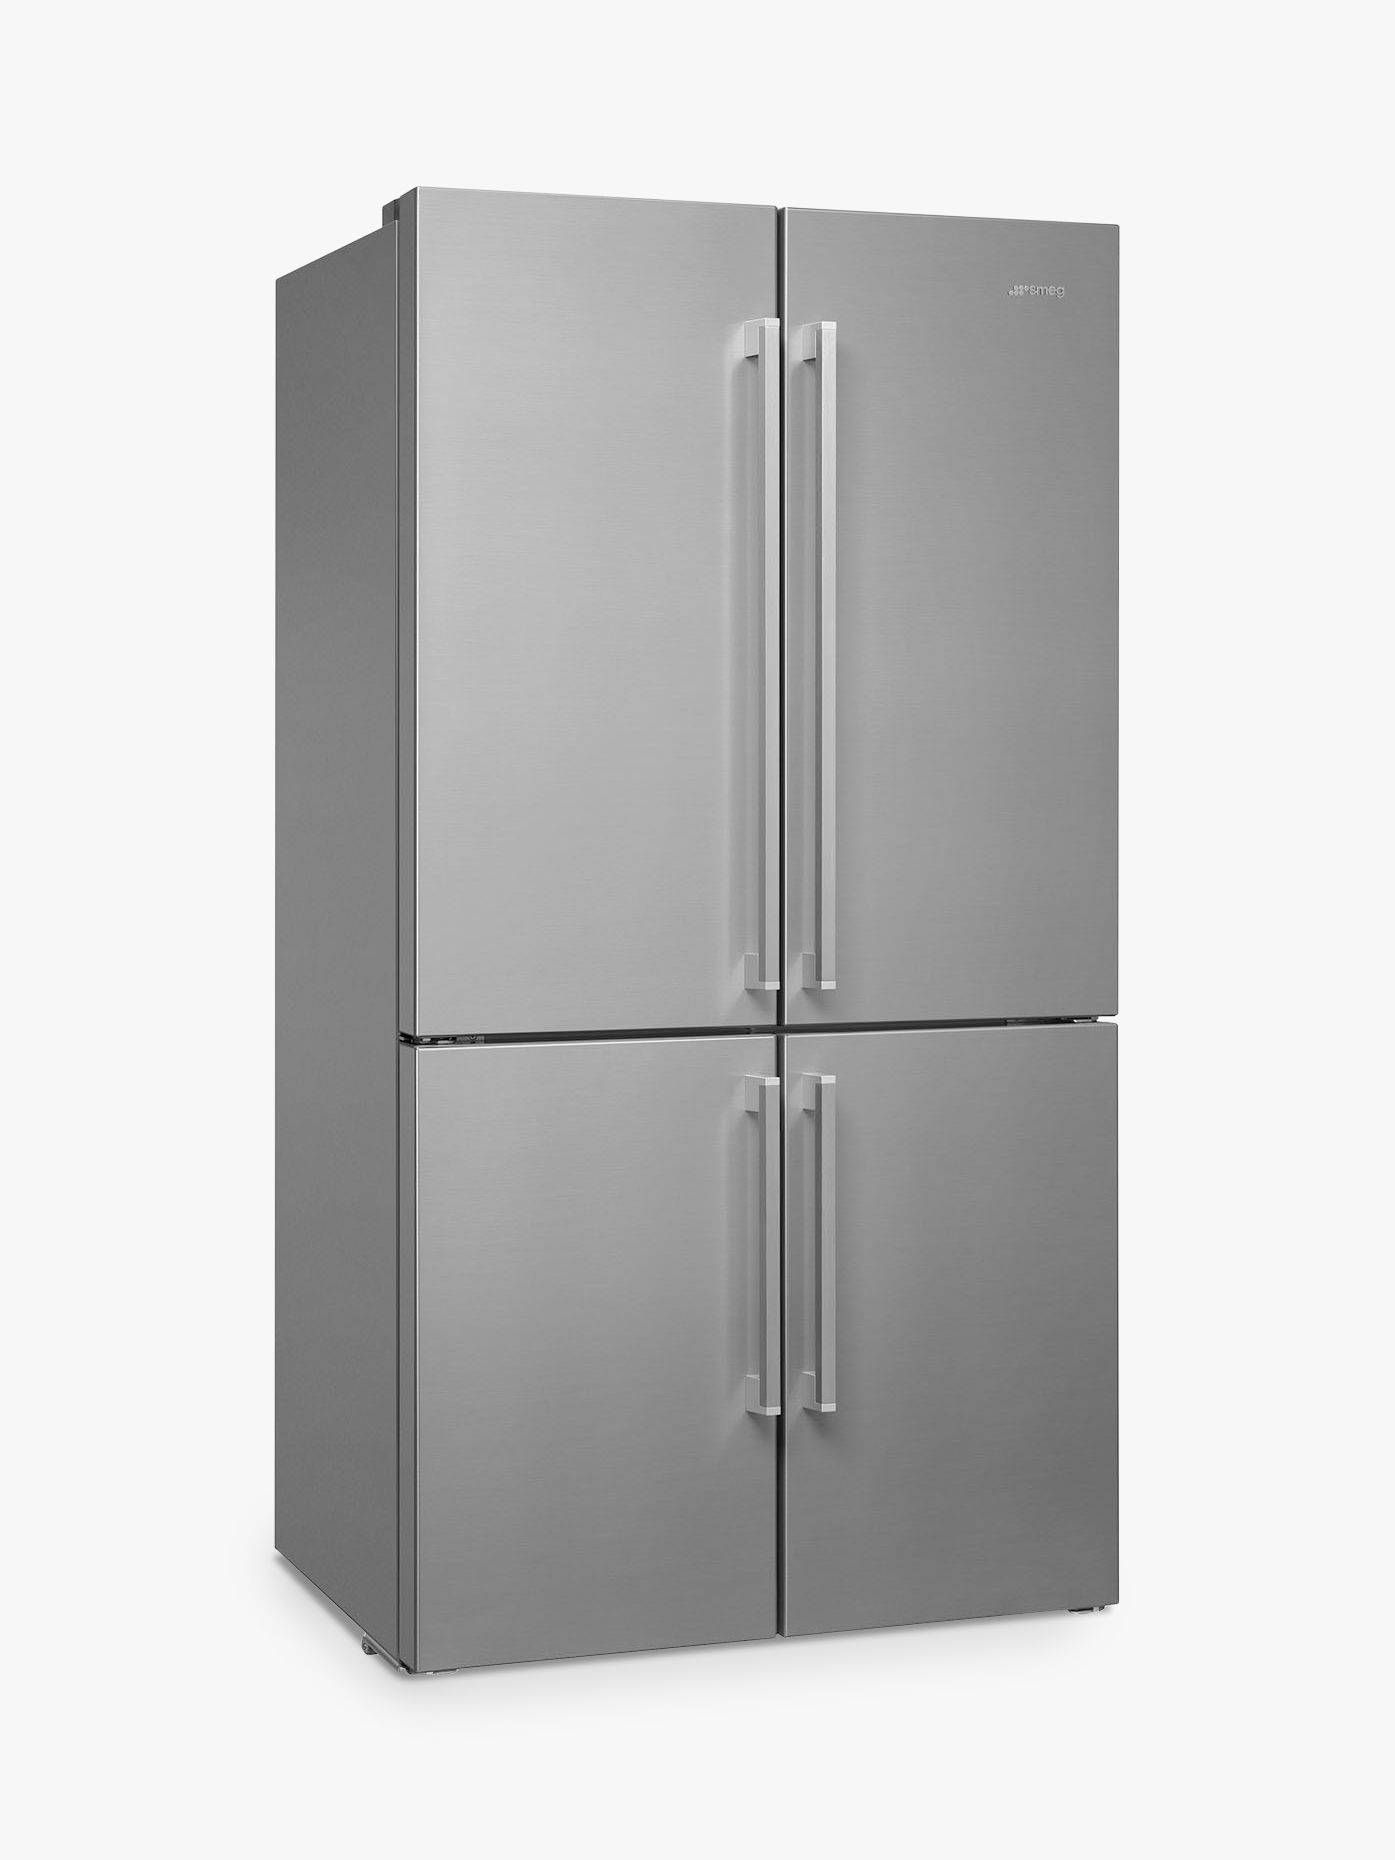 Smeg Smeg FQ60XP1 4-Door American Style Fridge Freezer, A+ Energy Rating, 90.8cm Wide, Stainless Steel